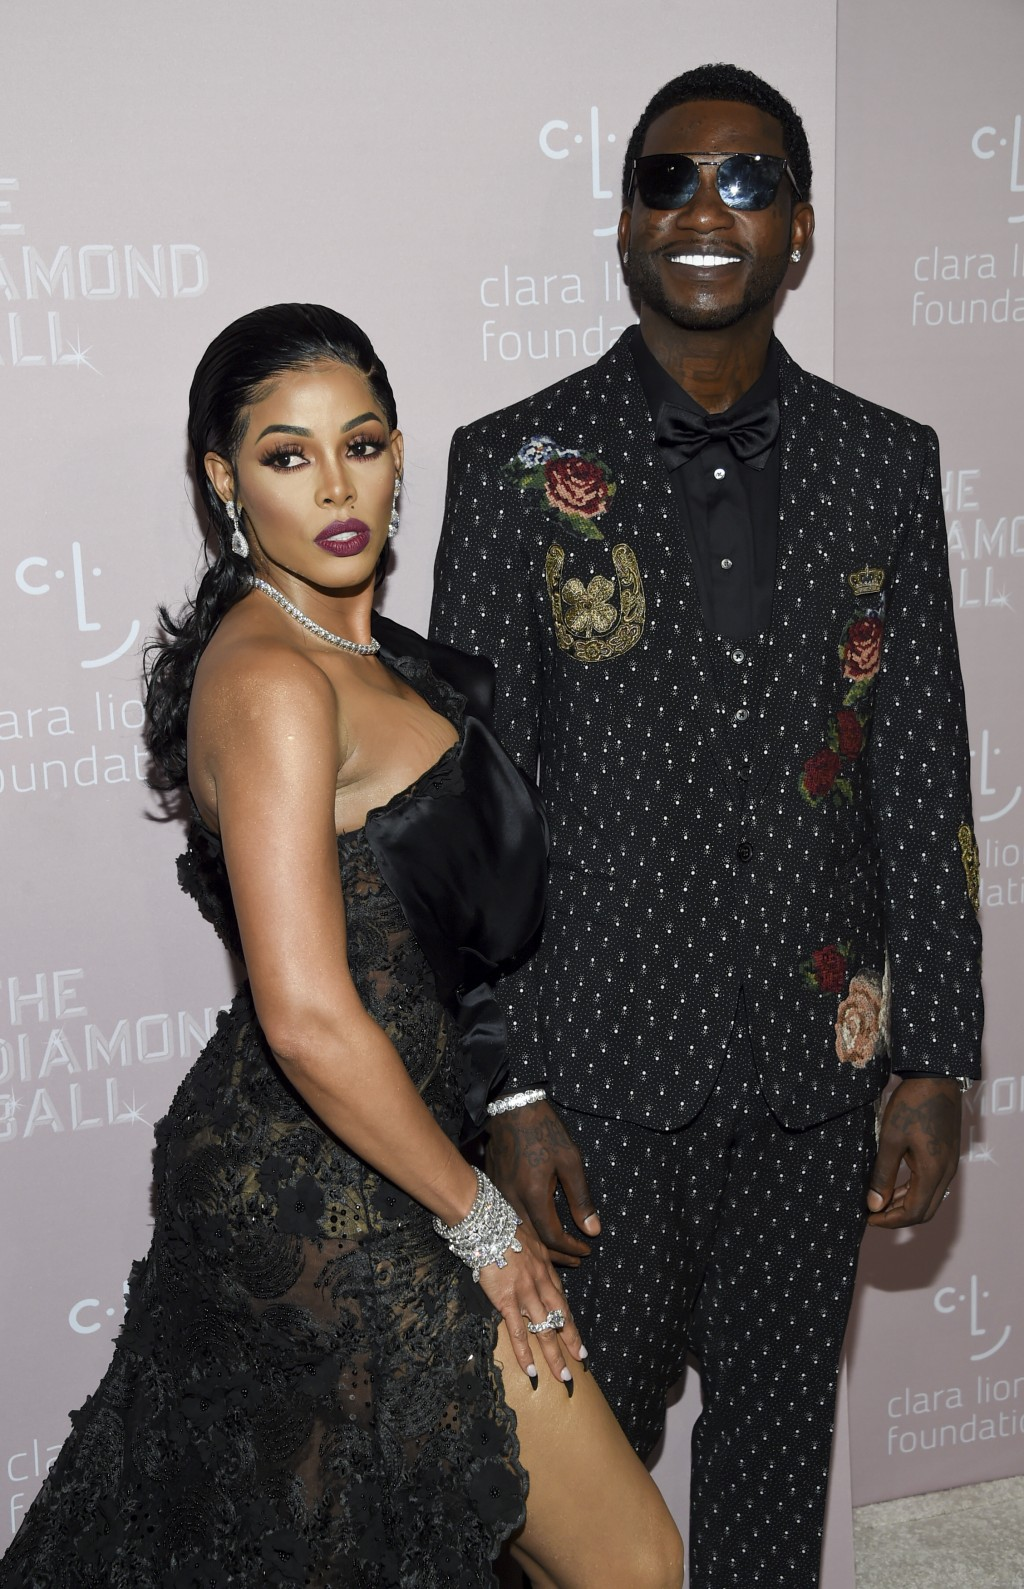 Rapper Gucci Mane, right, and fiancee Keyshia Ka'oir attend the 4th annual Diamond Ball at Cipriani Wall Street on Thursday, Sept. 13, 2018, in New Yo